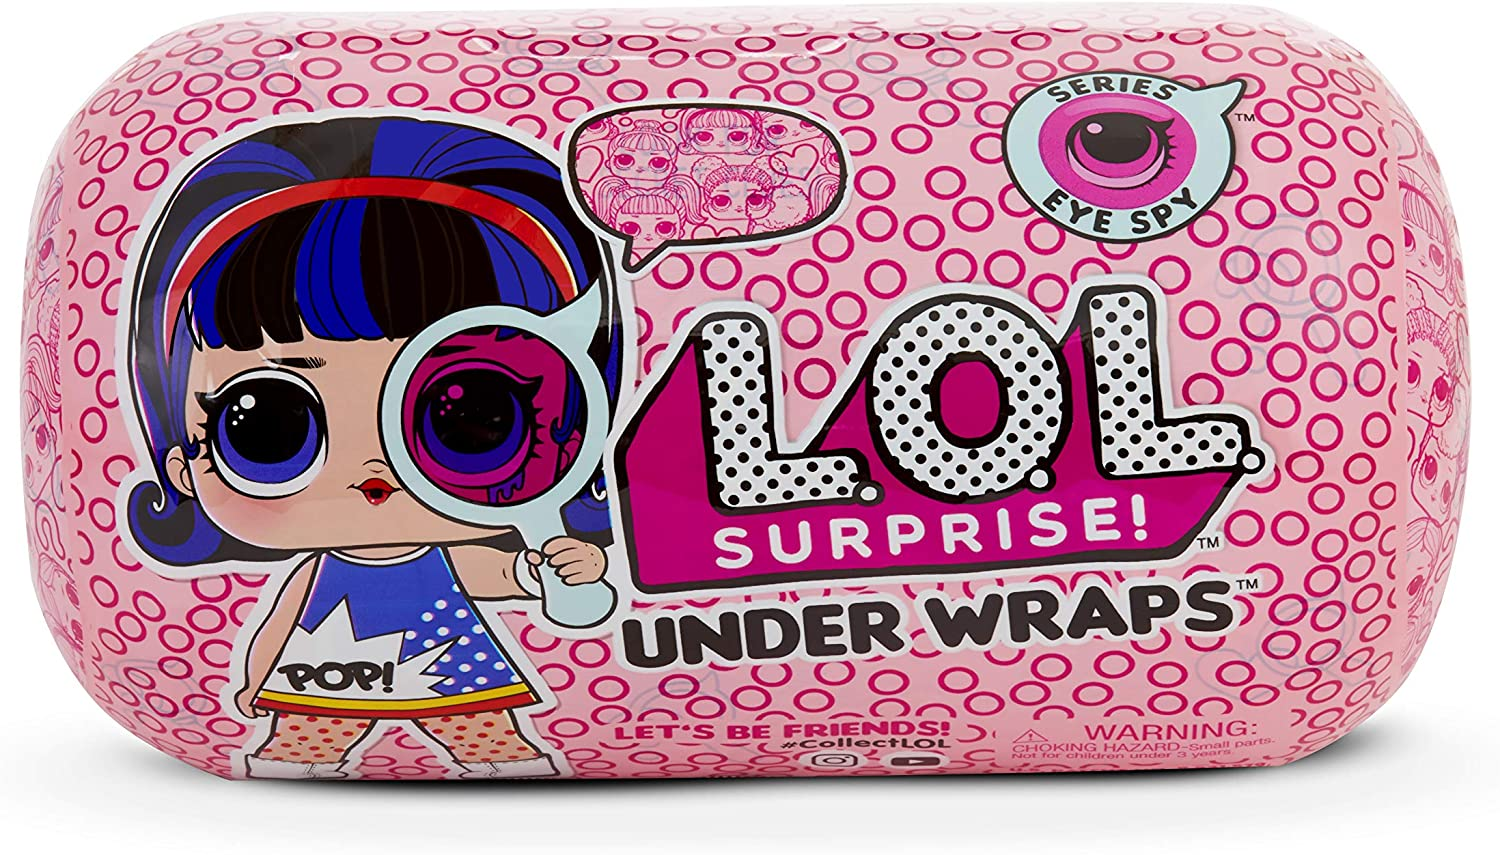 Amazon.es: L.O.L. Surprise! - Under Wraps Serie Espia Muñeca con ...